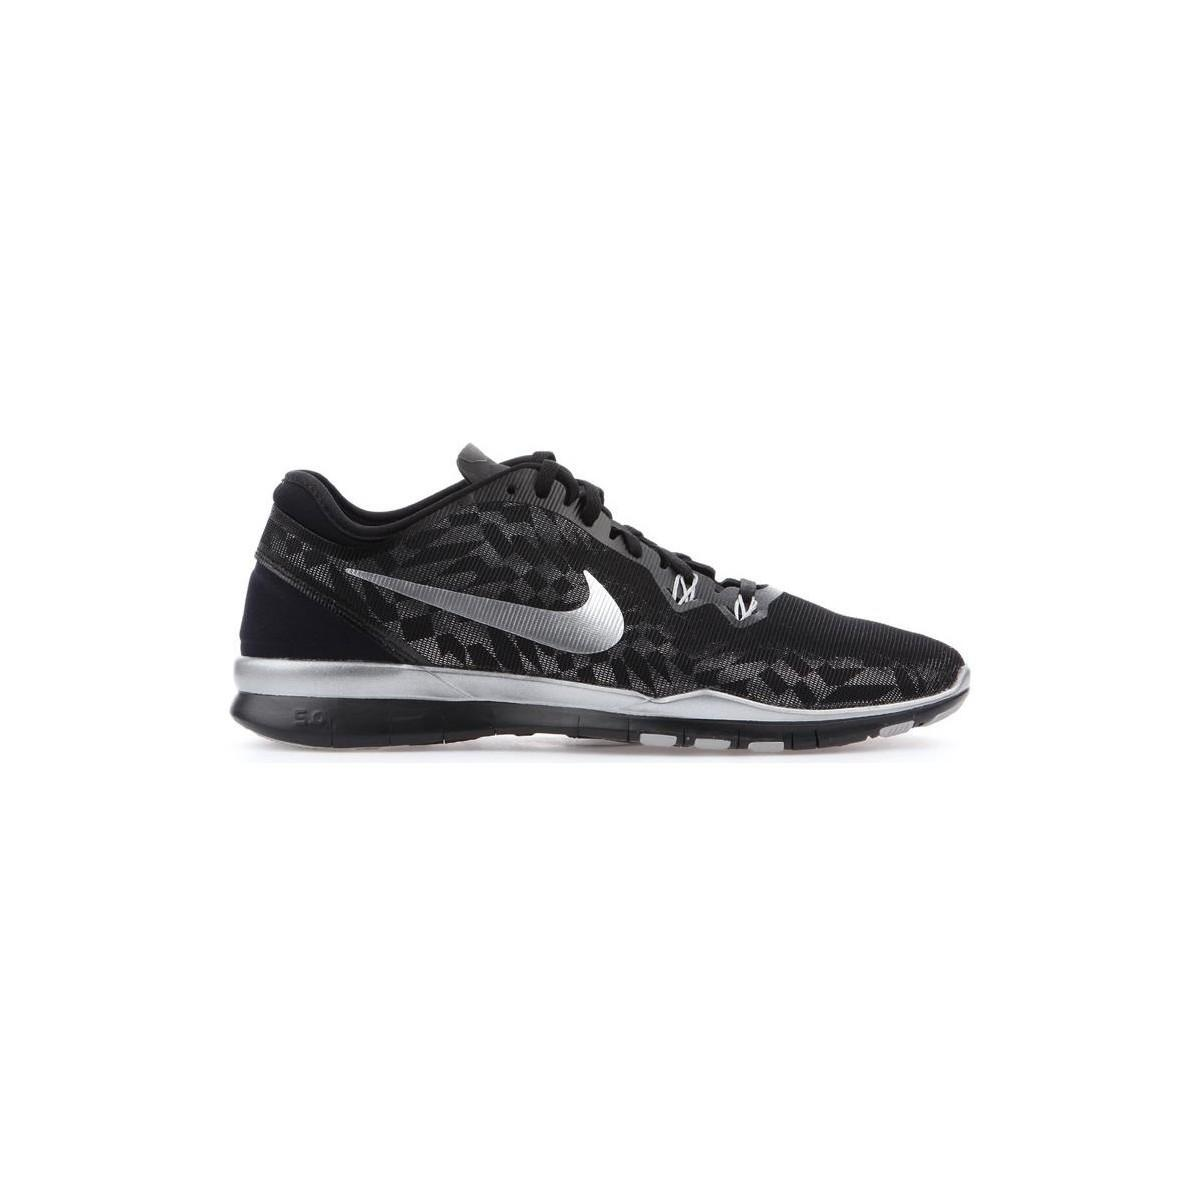 c67c46aee55c Nike Free 5.0 Tr Fit 5 Mtlc 806277-001 Women s Shoes (trainers) In ...